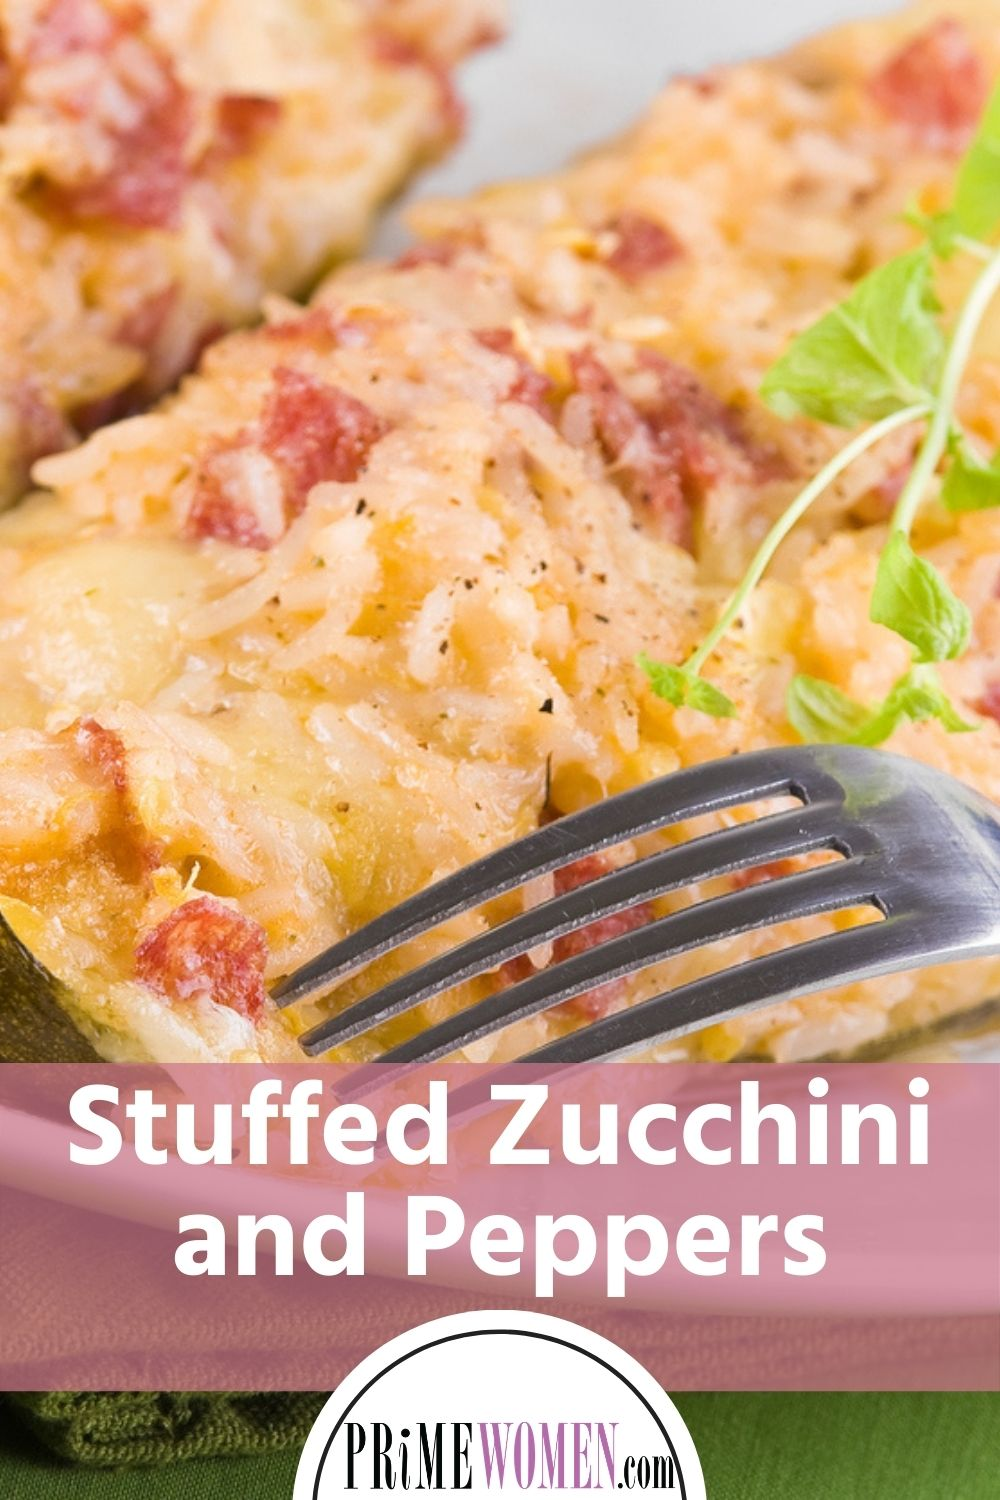 Stuffed Zucchini and Peppers Recipe